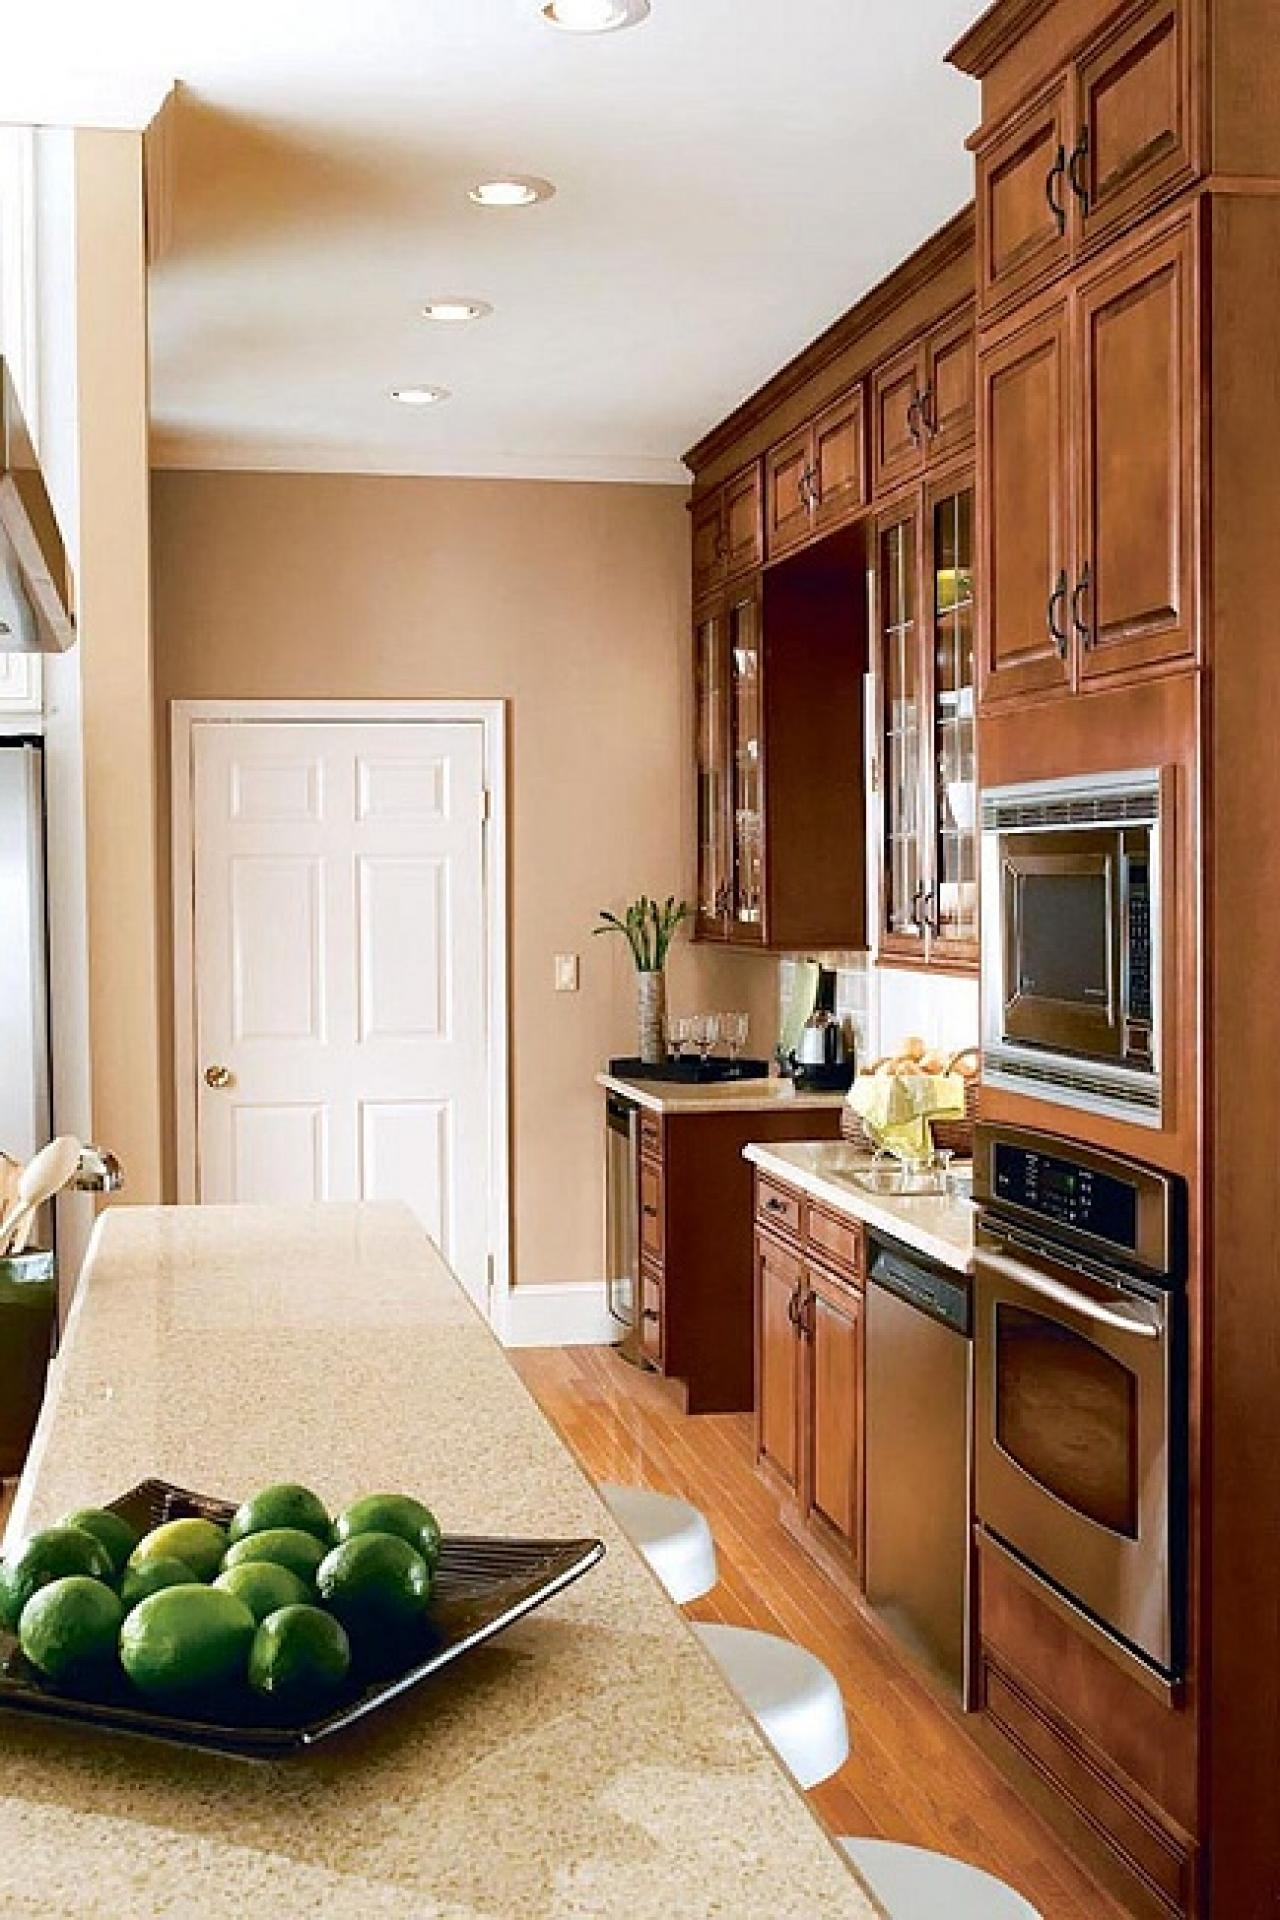 paint colors that go with oak trimColors That Bring Out the Best in Your Kitchen  HGTV